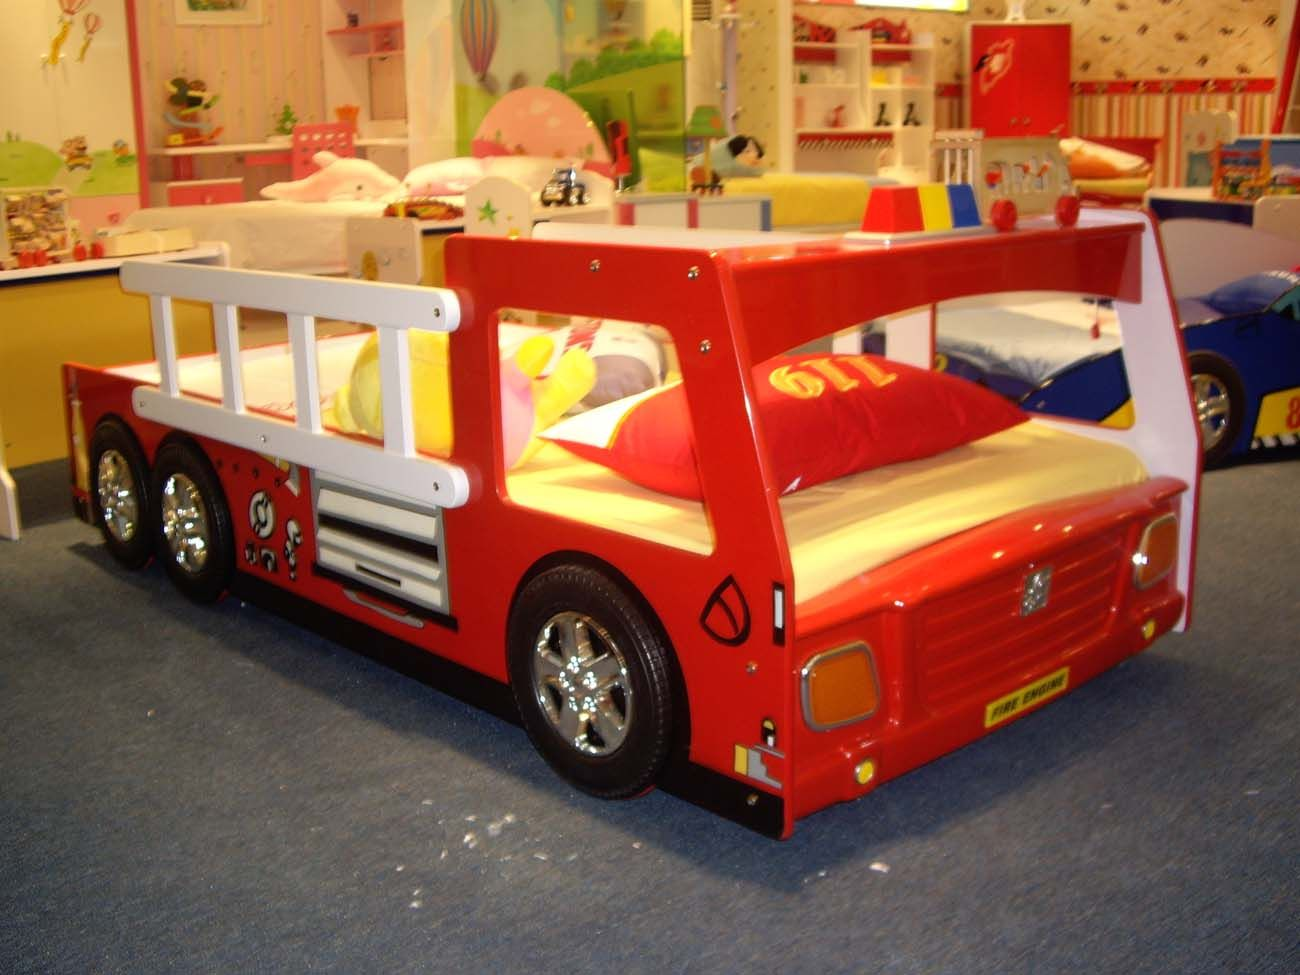 Bedroom designs for kids boys - Bedroom Design Amazing Kids Bed With Racing Cars Models And Other Vehicles Boys Fire